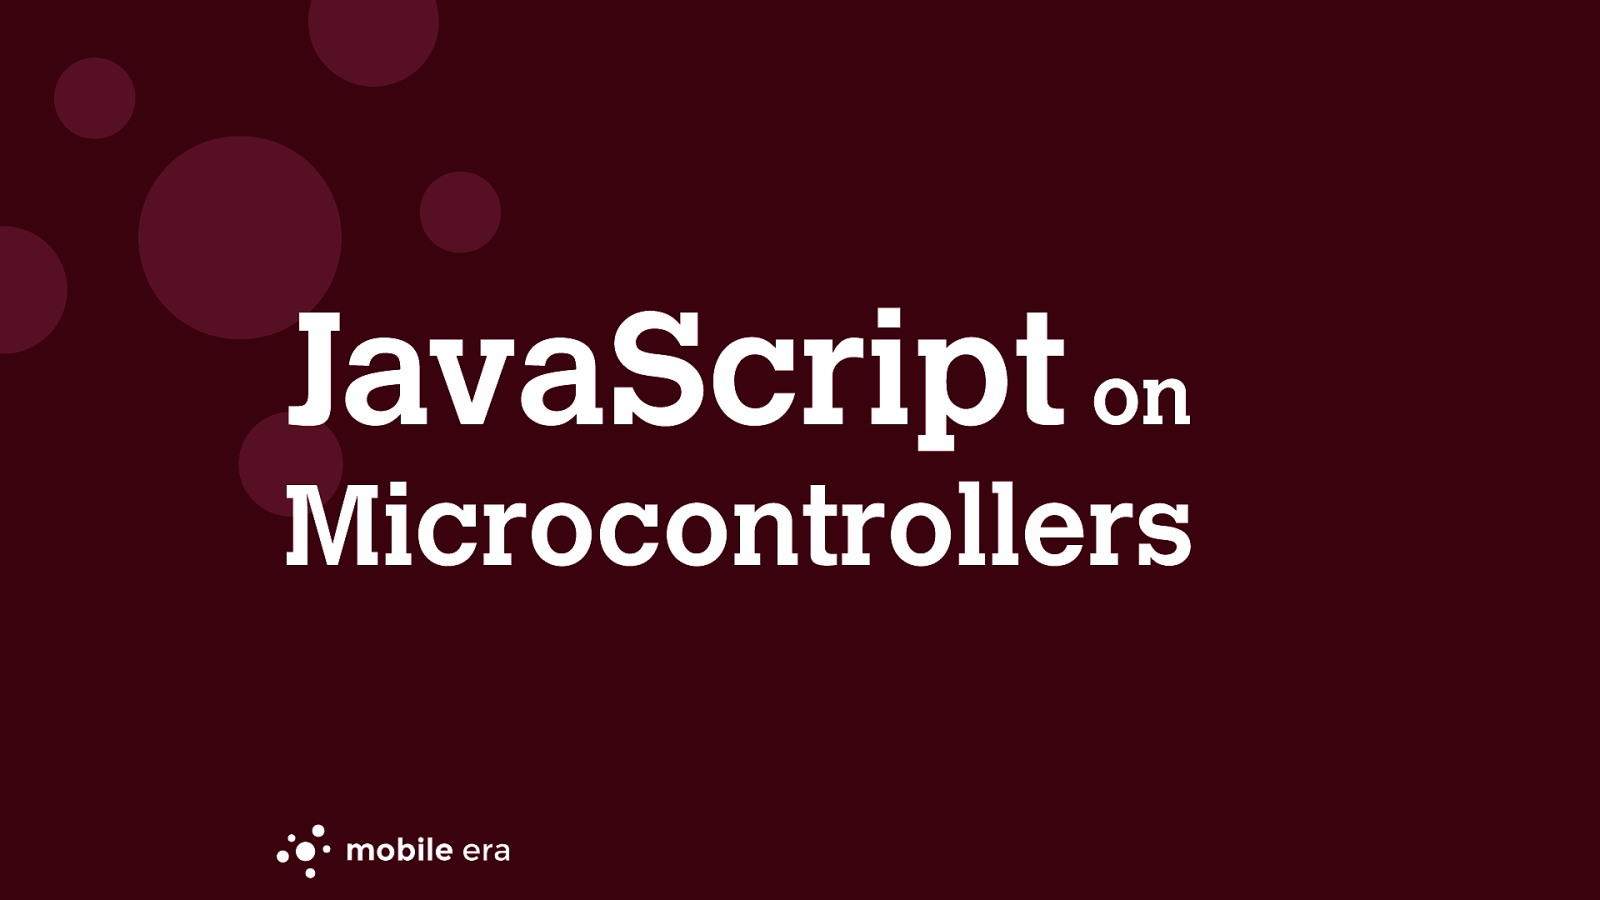 JavaScript on Microcontrollers